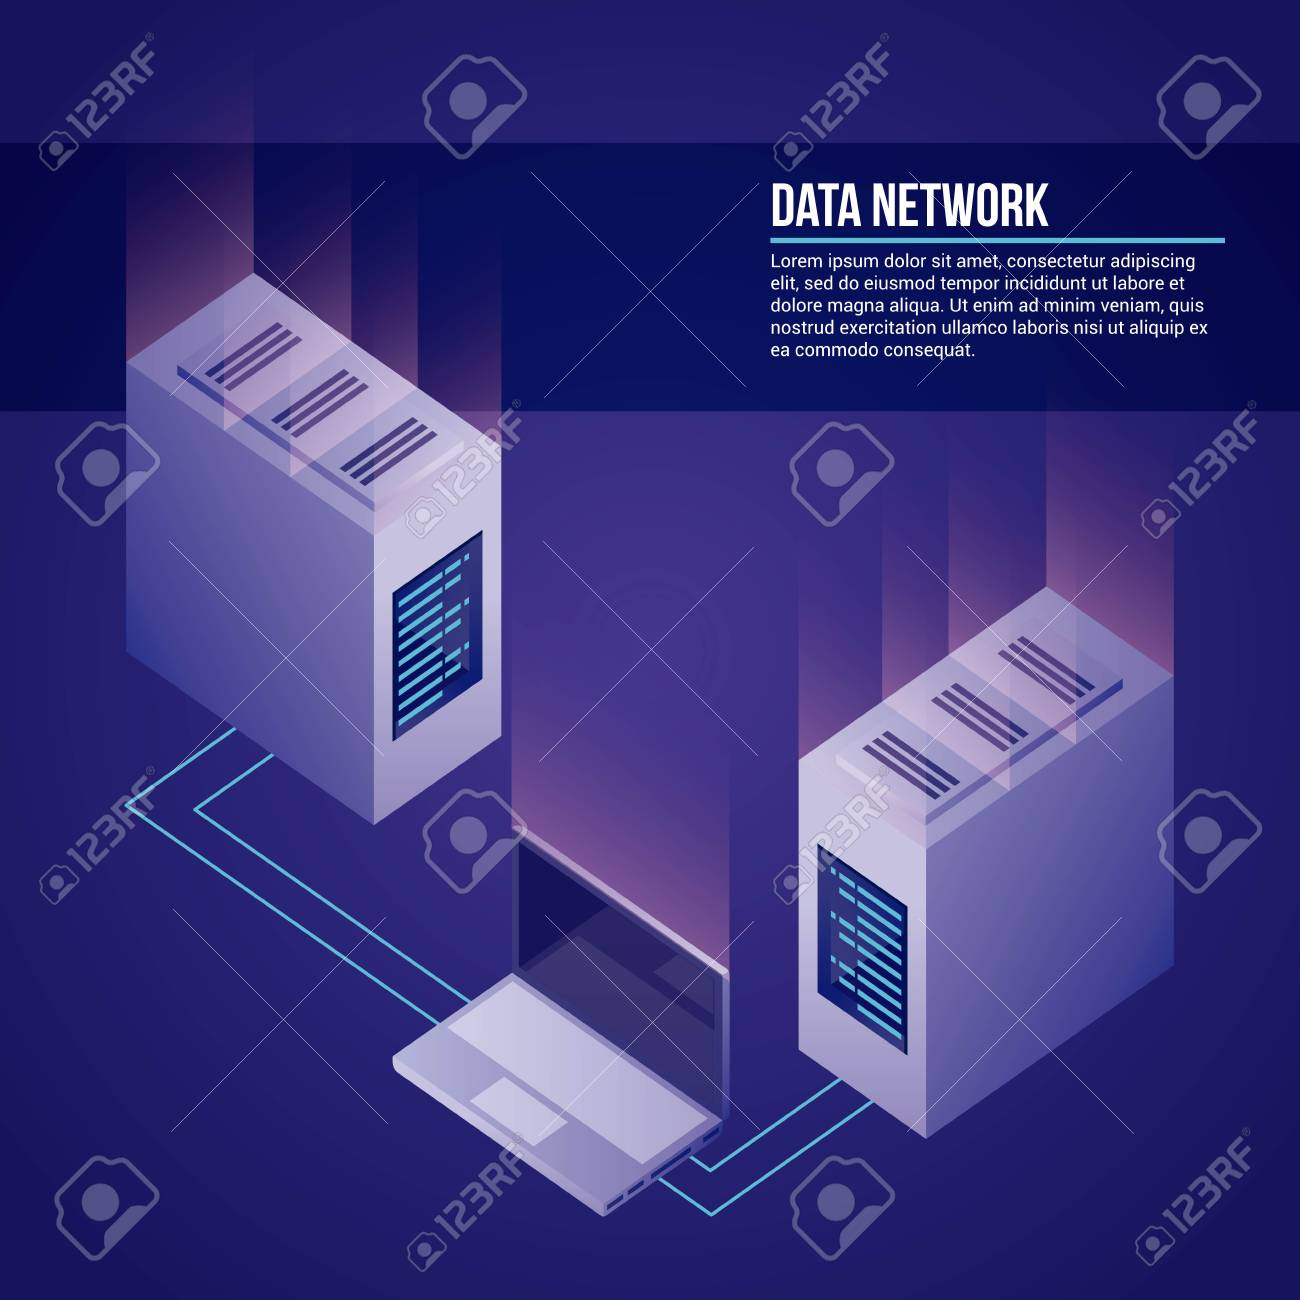 data network towers computer base vector illustration - 111664829